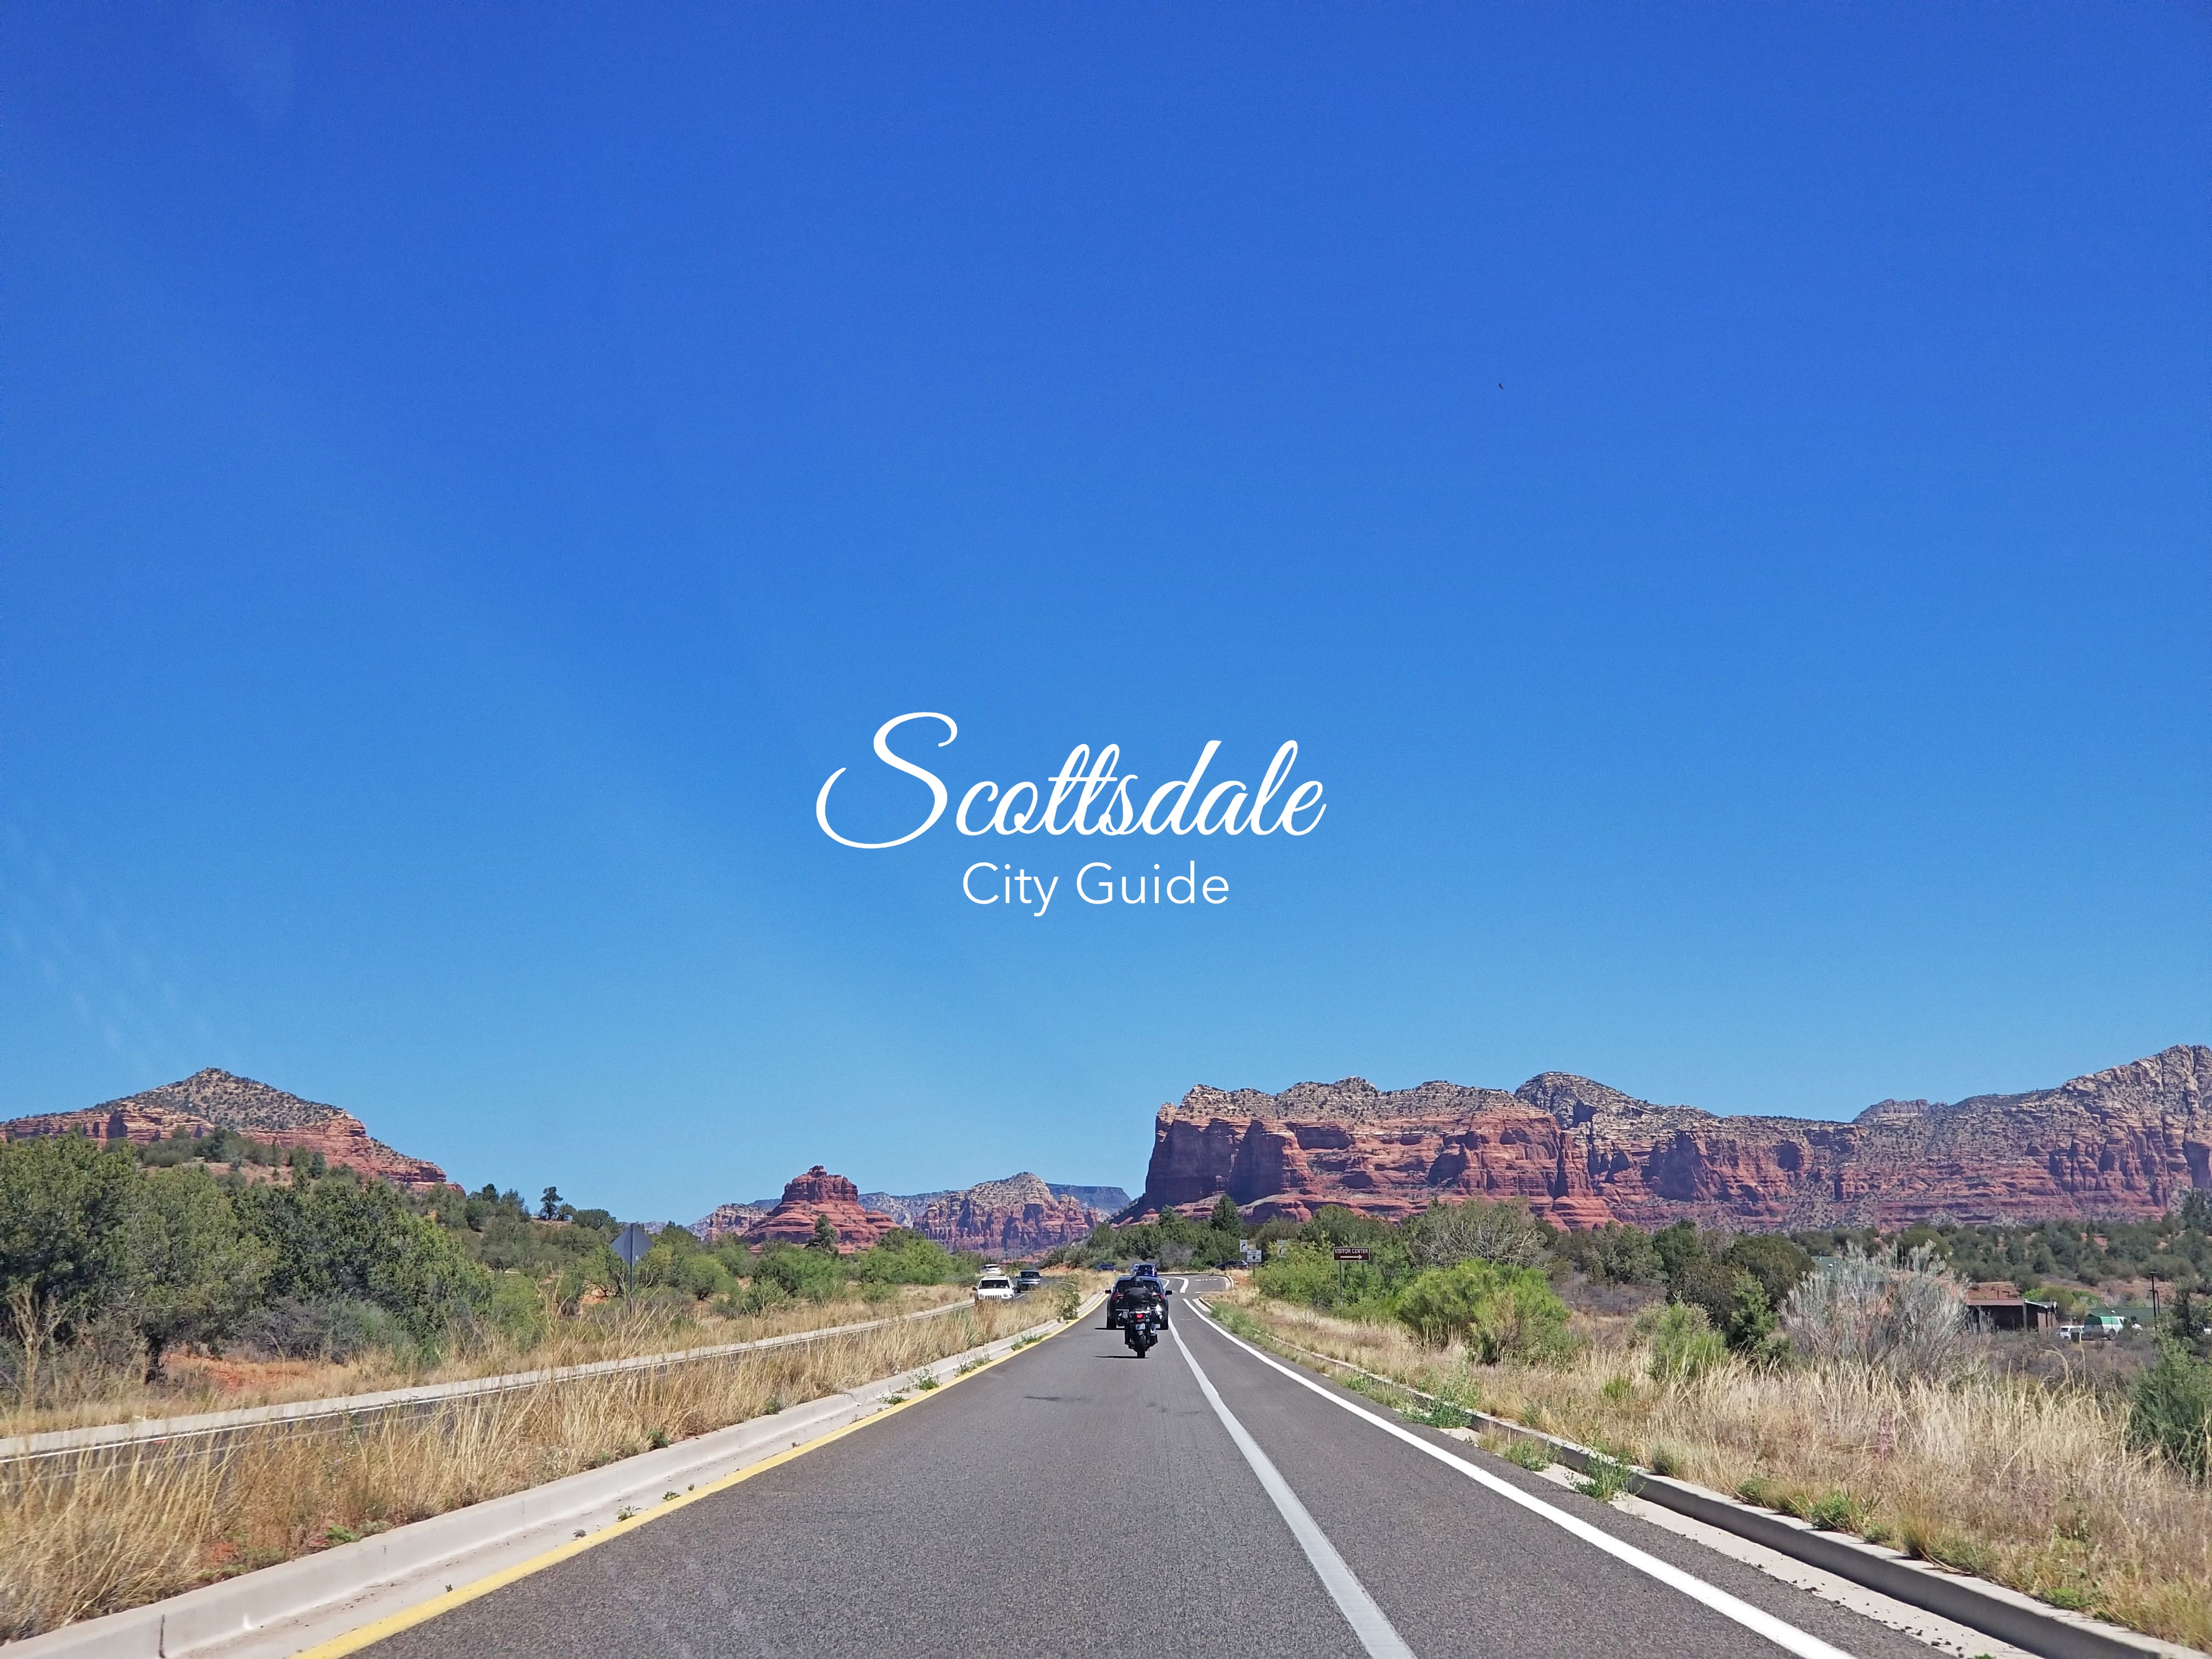 Scottsdale City Guide